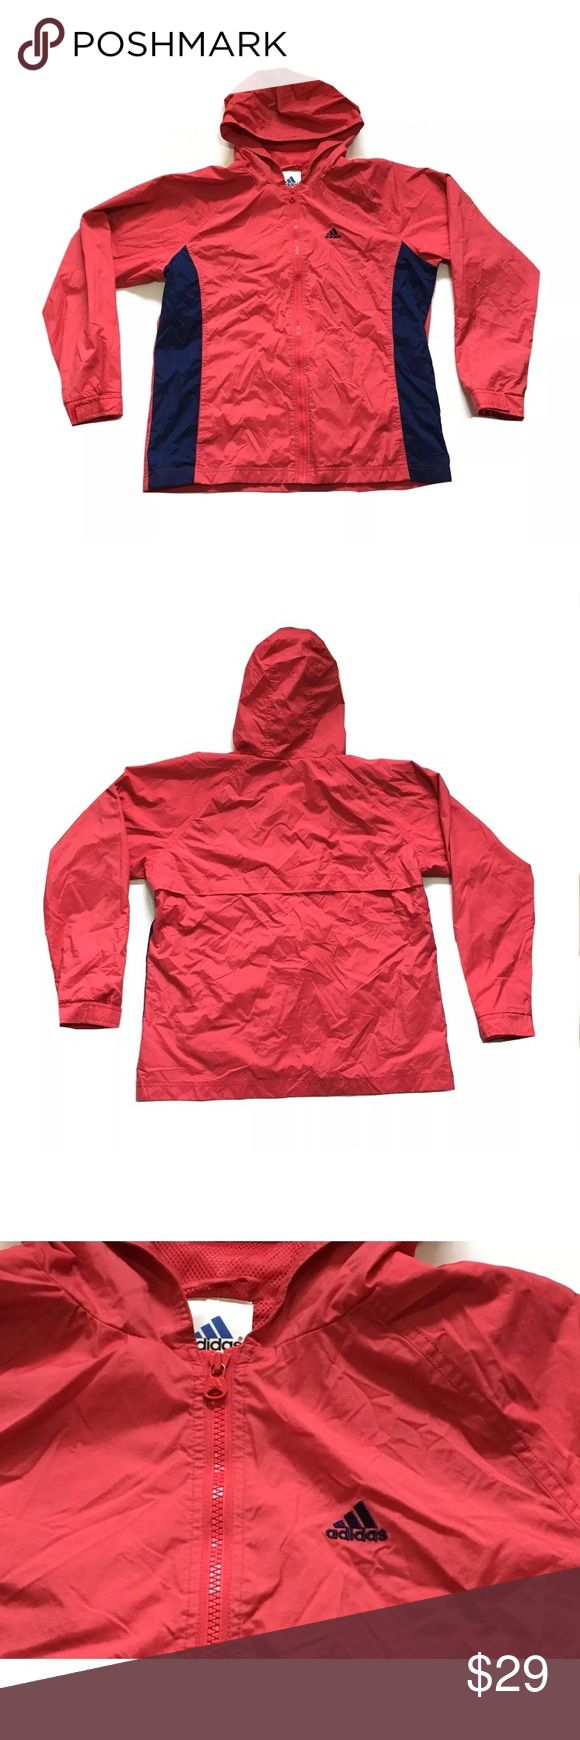 Adidas Windbreaker Jacket Zip Up Red Medium PLEASE NOTE- Small spot on wrist SHOWN IN PHOTO 6 & zipper is loosing color SHOWN IN PHOTO 5  Adidas Womens Windbreaker Jacket Zip Up Hooded Pockets Red Navy size Medium  Length, Shoulder to Bottom: 25 1/4 inches Armpit to Armpit: 21 3/4 inches Armpit to end of Sleeve: 20 1/2 inches  Inventory# AO15 adidas Jackets & Coats